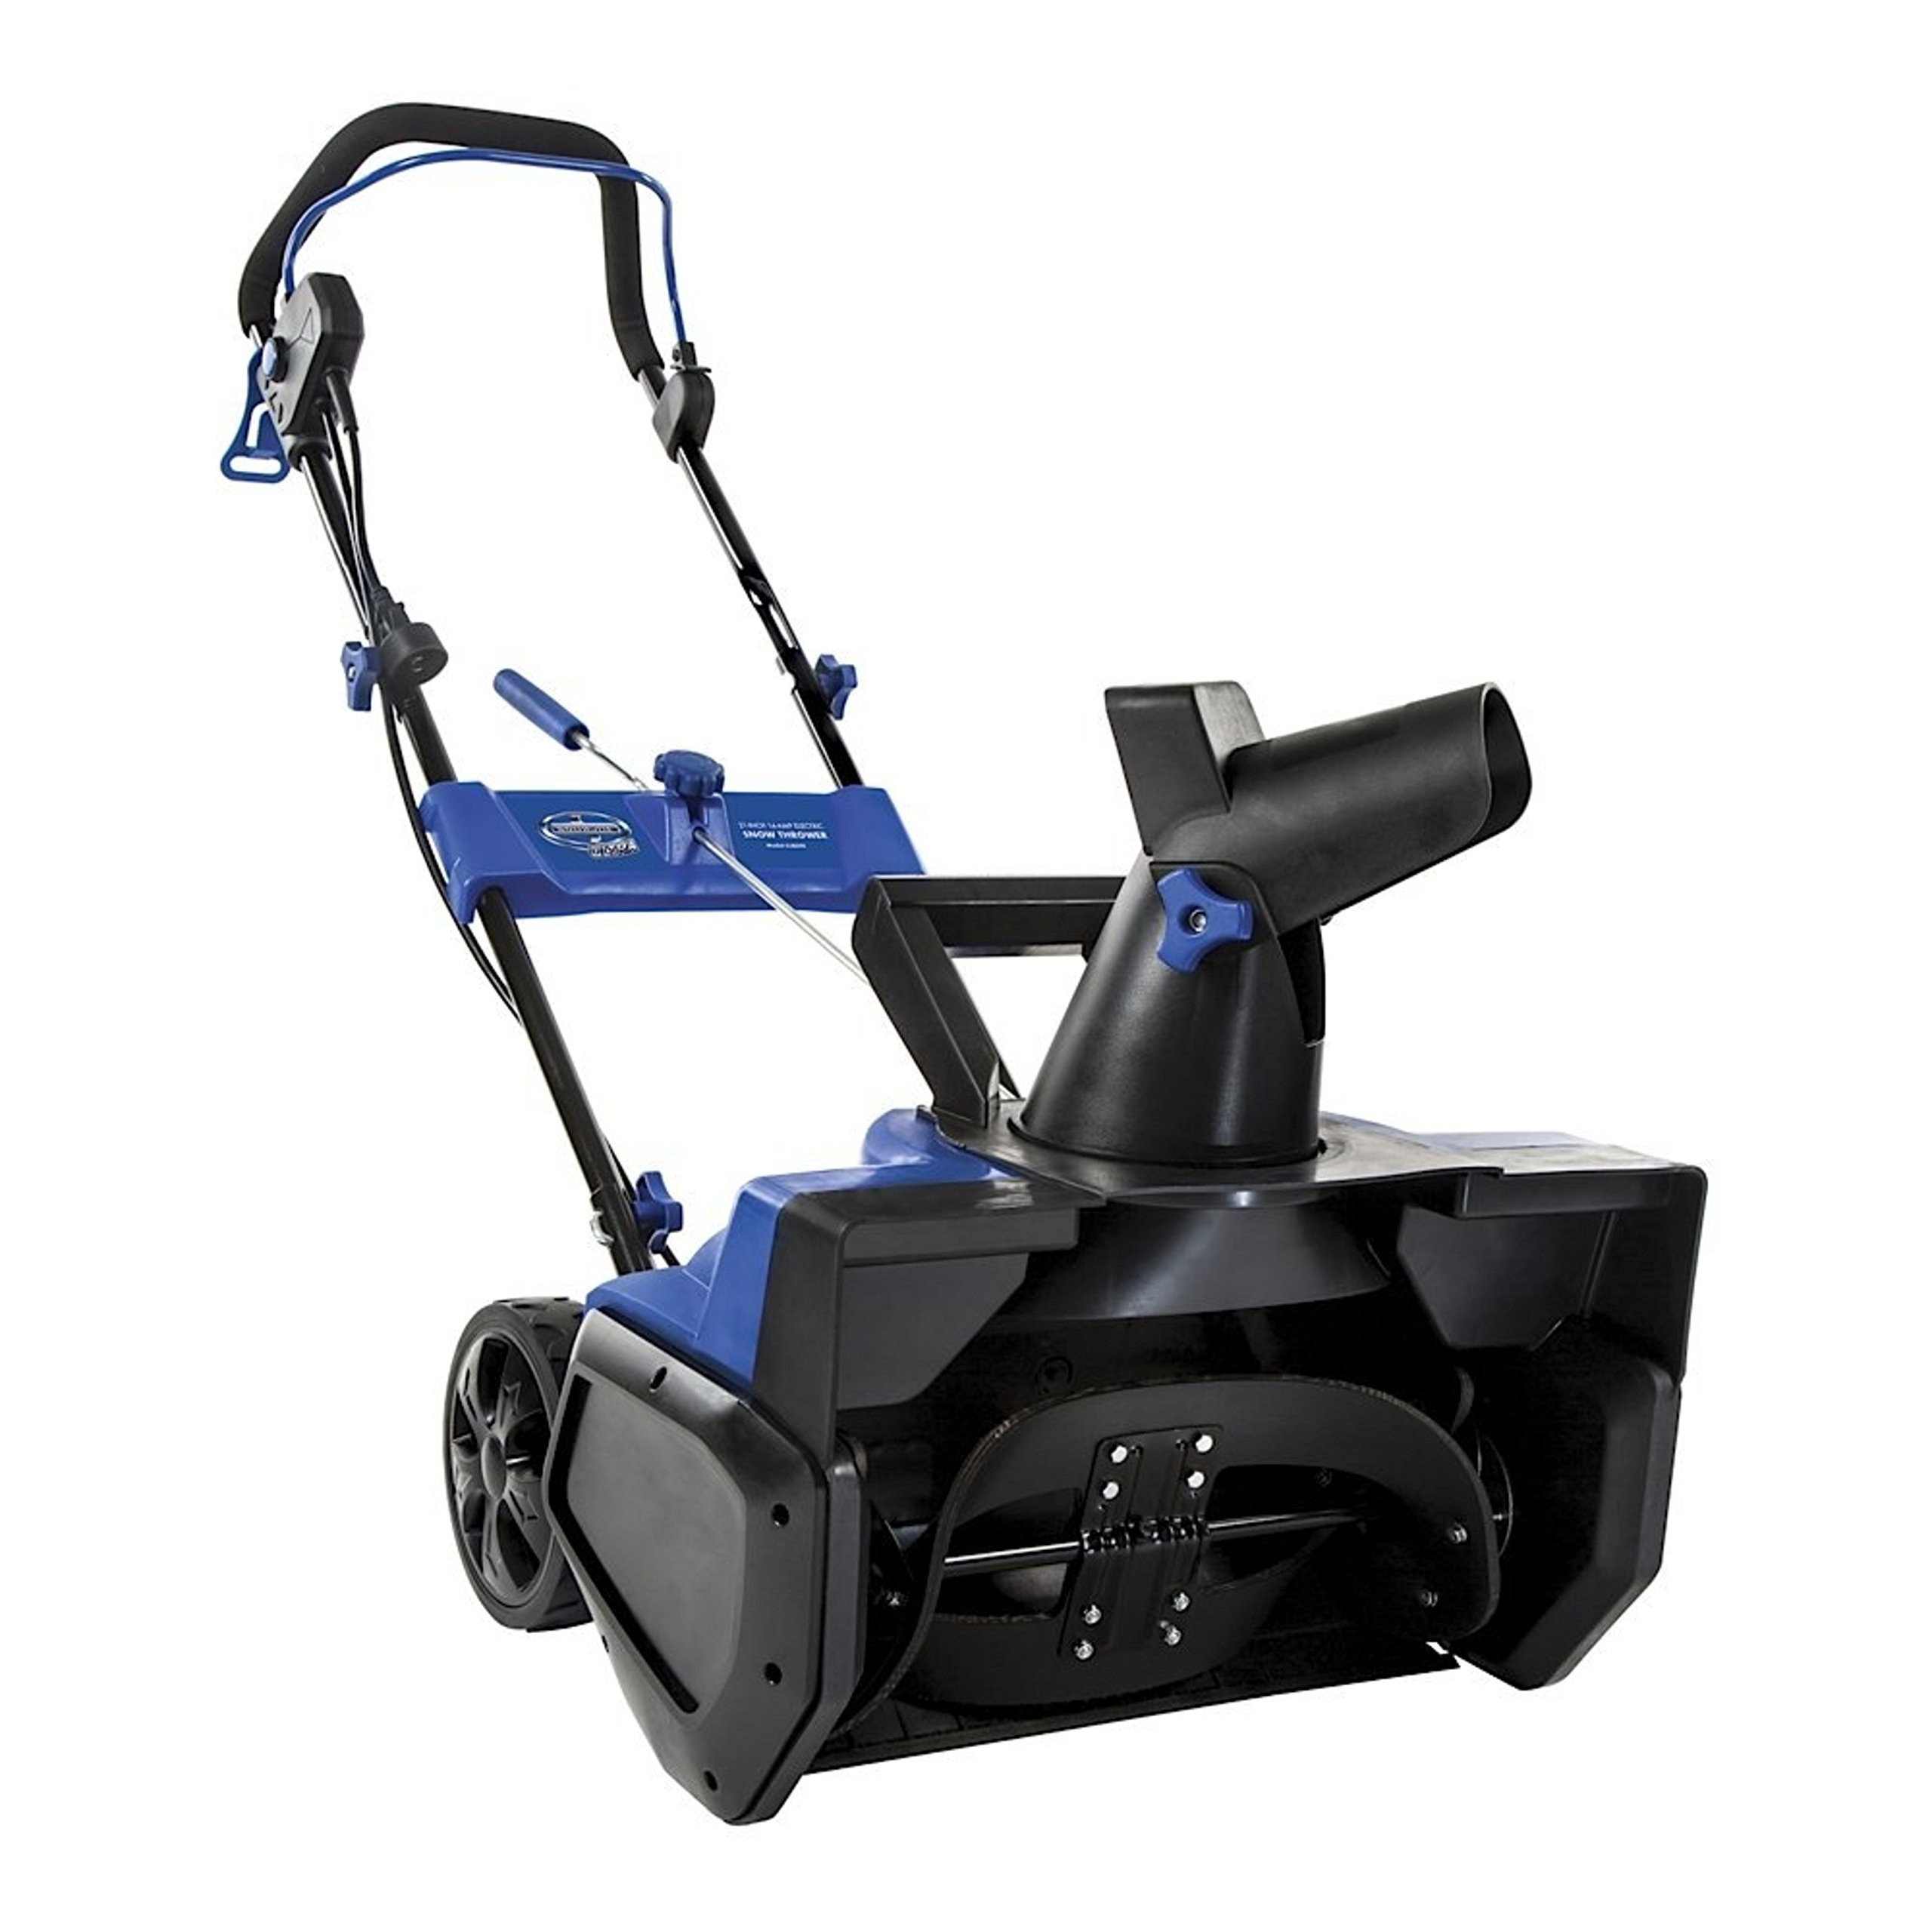 Ultra 14 Amp 21 in. Durable Electric Single Stage Snow Thrower